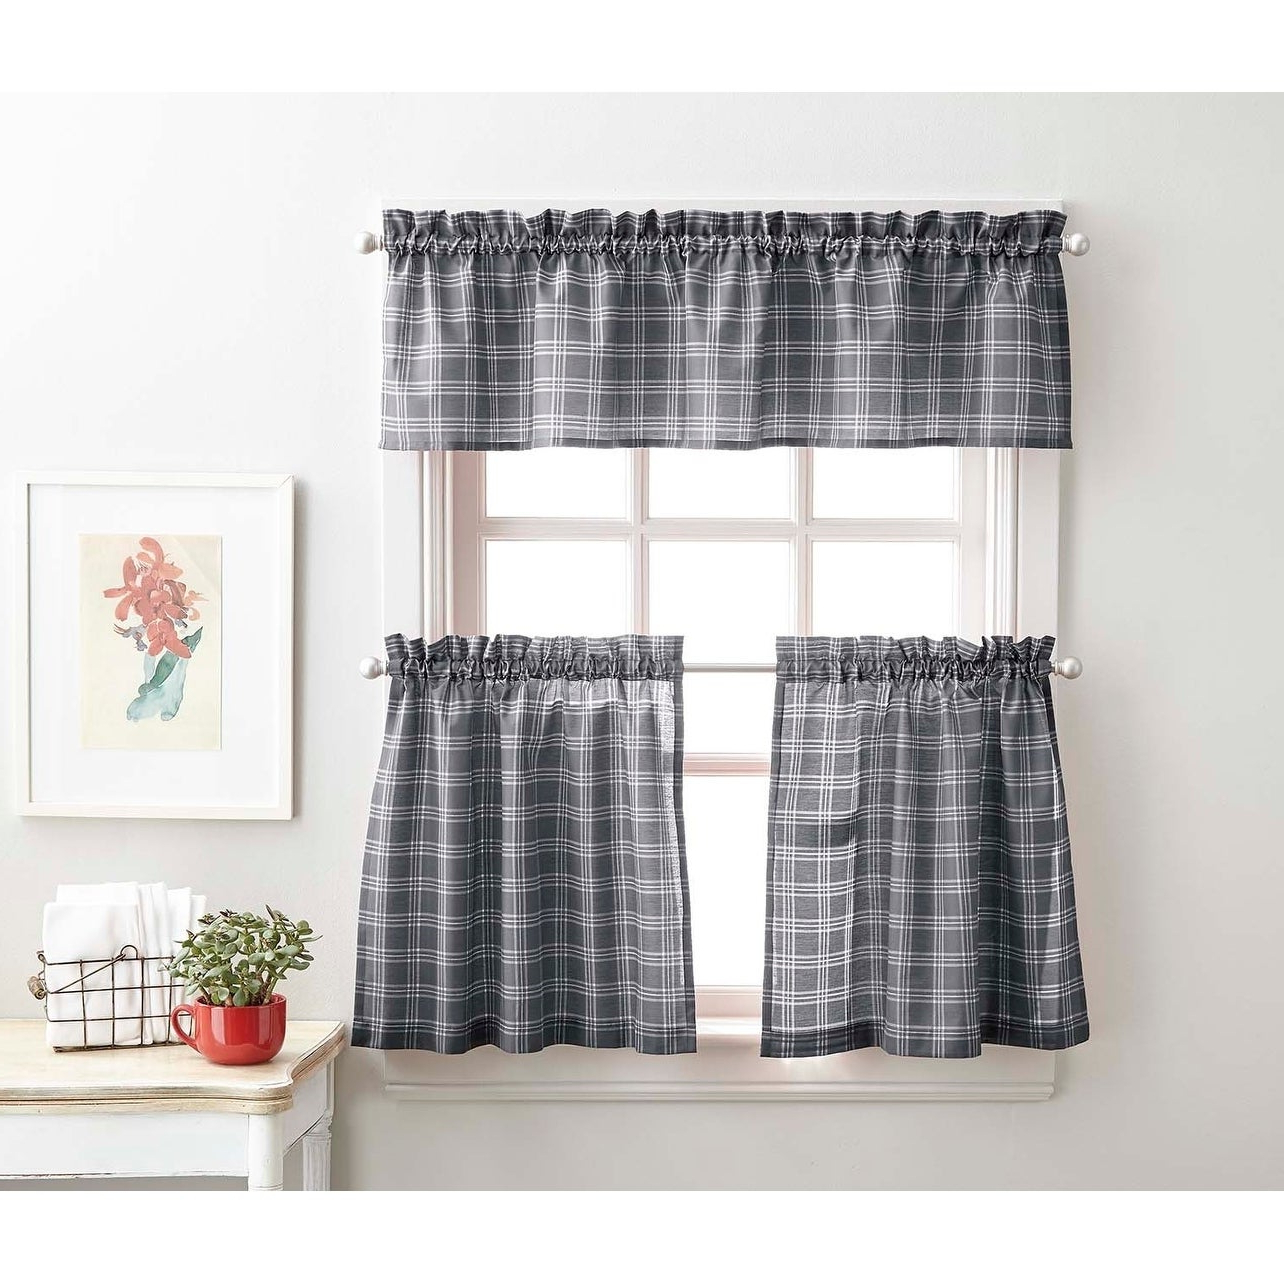 """Trendy Cottage Ivy Curtain Tiers Throughout Lodge Plaid 3 Piece Kitchen Curtain Tier And Valance Set – 36"""" 3Pc Set (View 20 of 20)"""